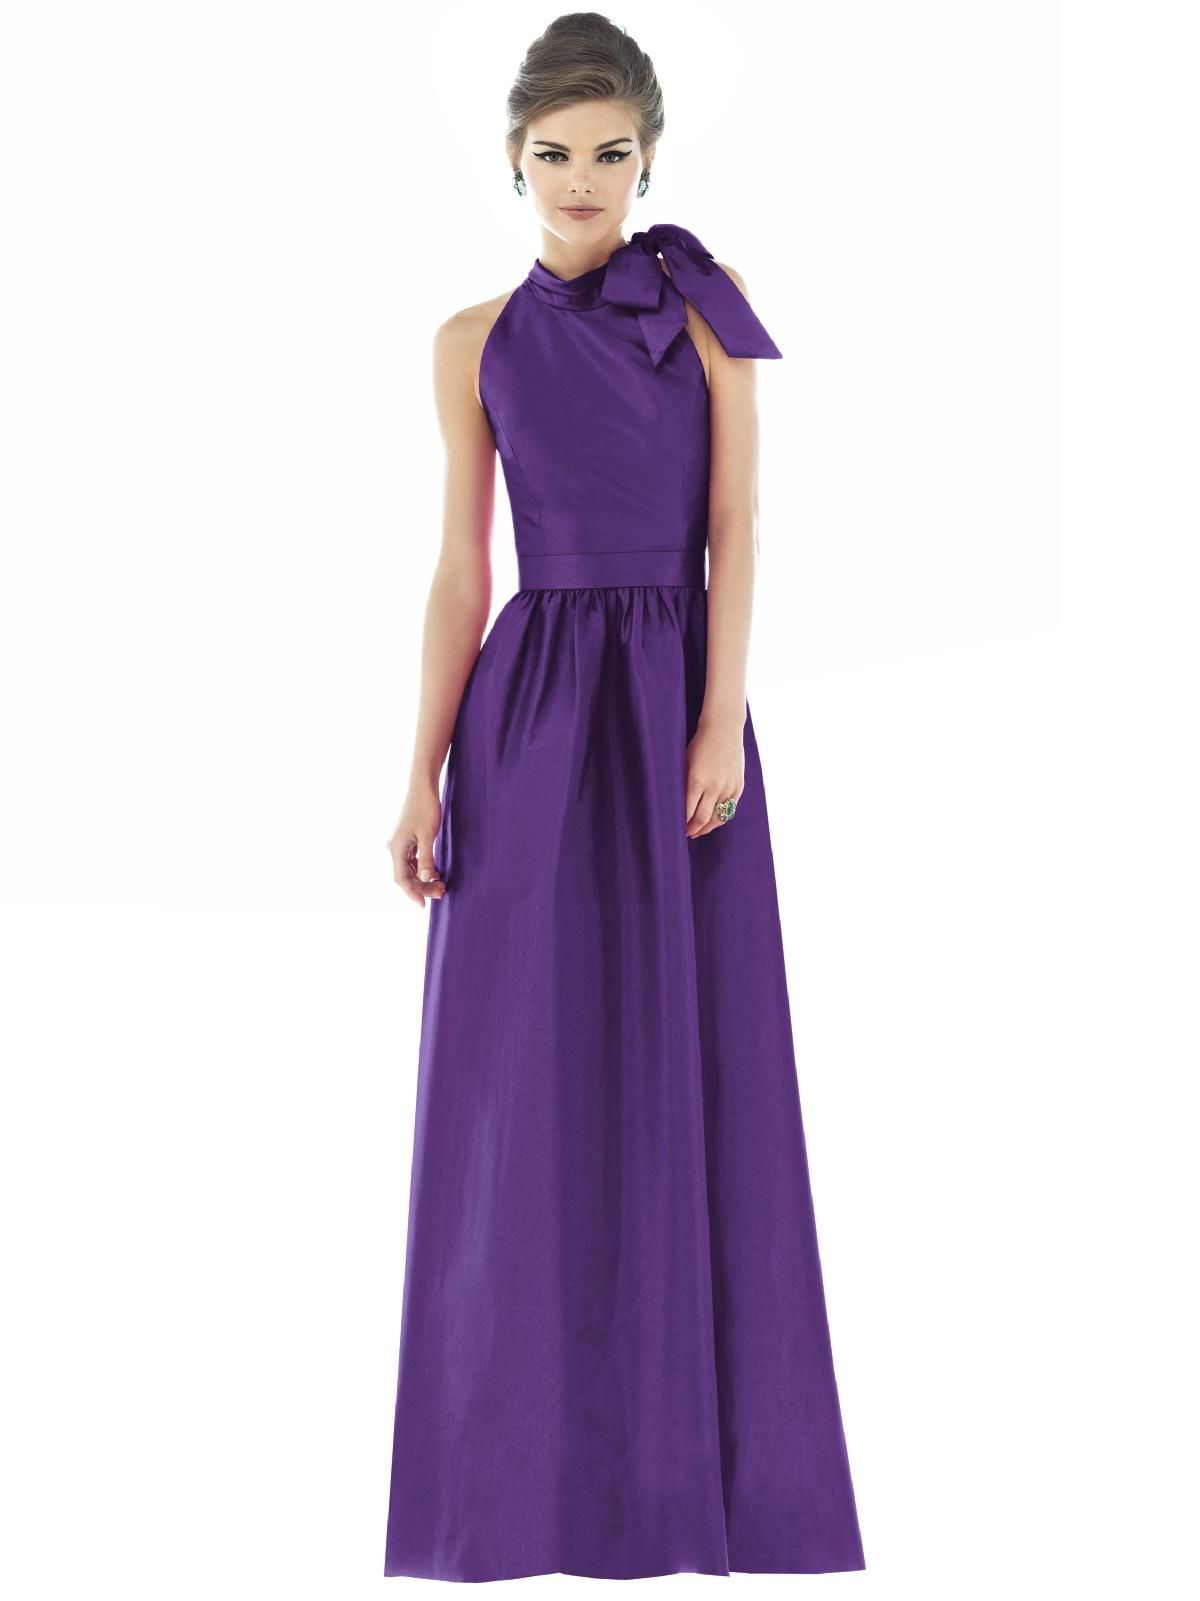 Blue and purple wedding dress  Alfred Sung Style D  Alfred sung Purple and Weddings